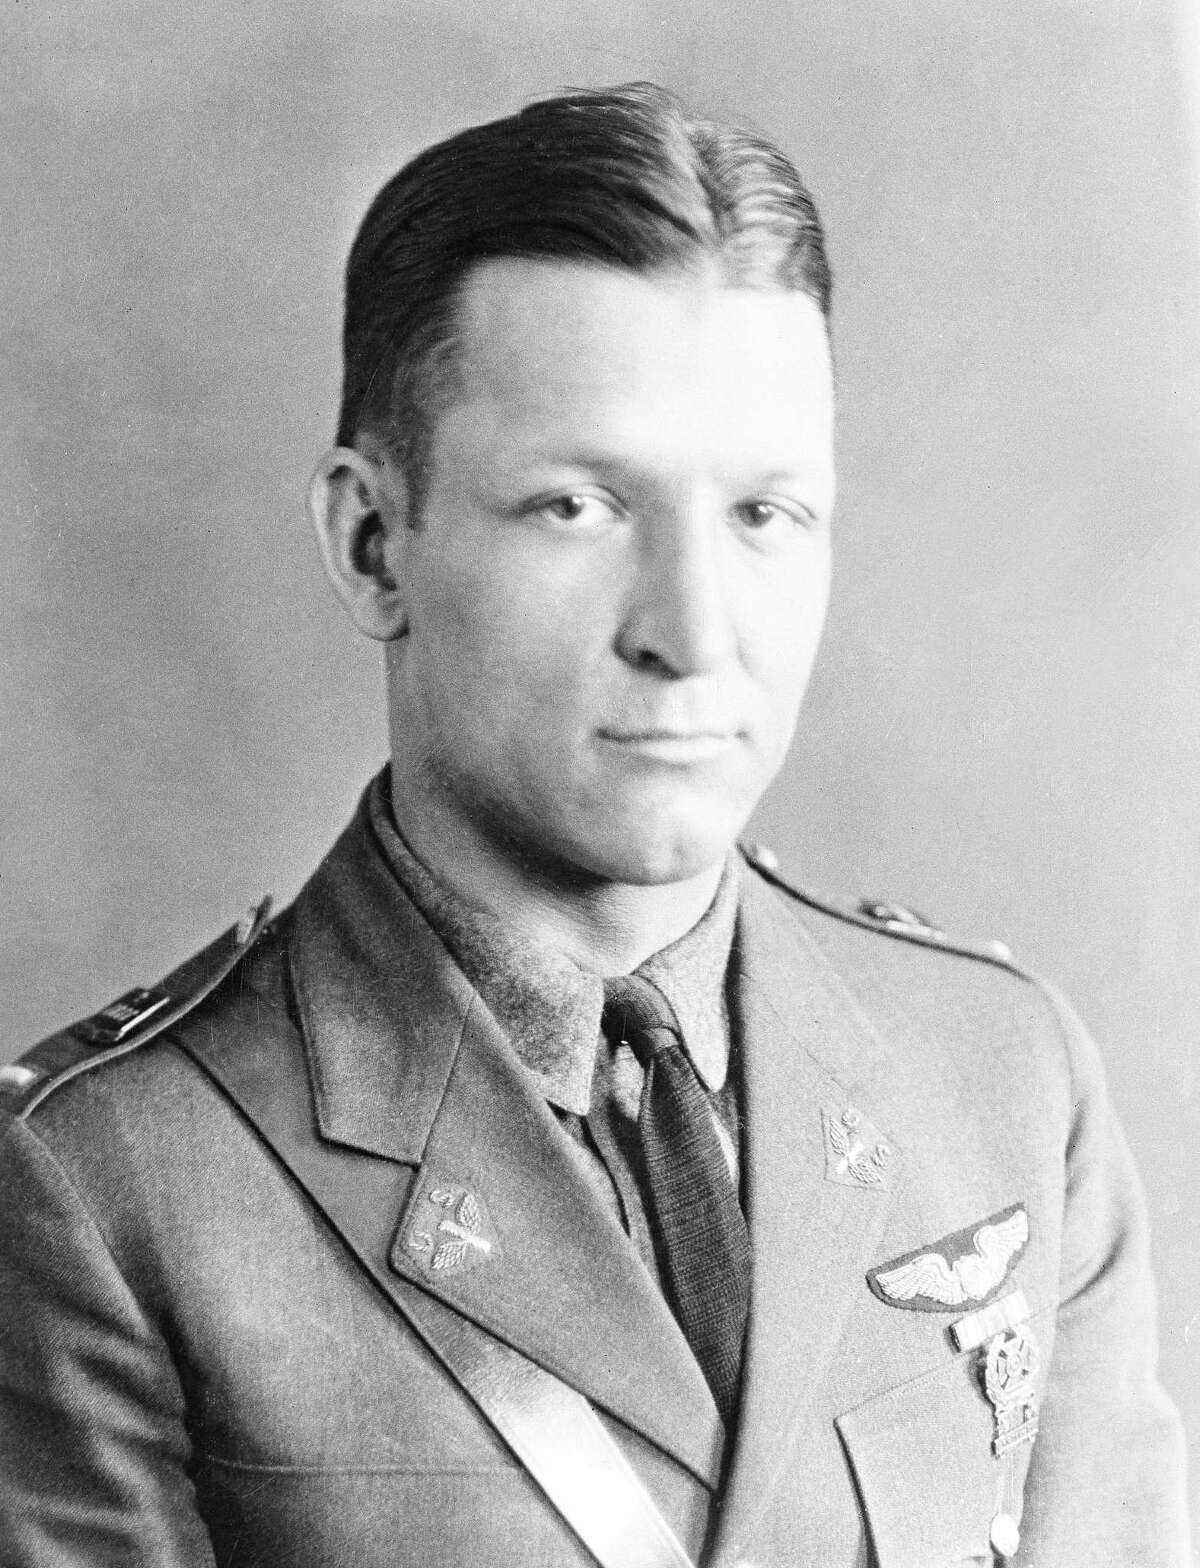 In this handout from the U.S. Air Force, Brig. Gen. Kenneth N. Walker of Glendale, Calif., is shown in this undated photo. Nearly 75 years after his father disappeared during a bombing mission over a remote Pacific island, Douglas Walker, the son of the highest-ranking recipient of the Medal of Honor still listed as missing from World War II, is pushing for renewed interest in finding the crash site and the remains of the crew. (AP Photo/USAF) ORG XMIT: NYR103